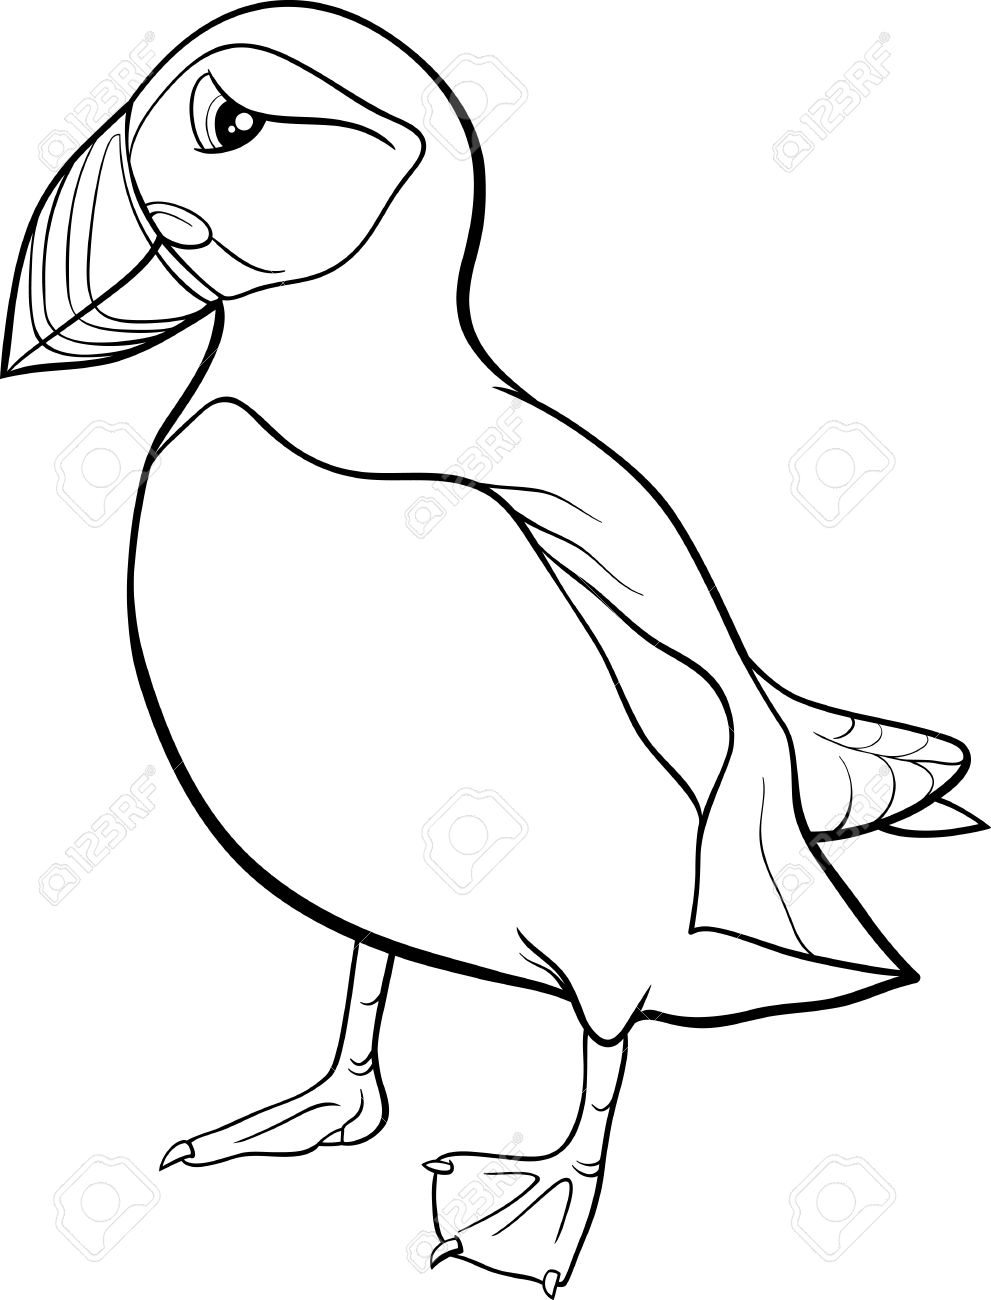 Atlantic Puffin clipart #12, Download drawings